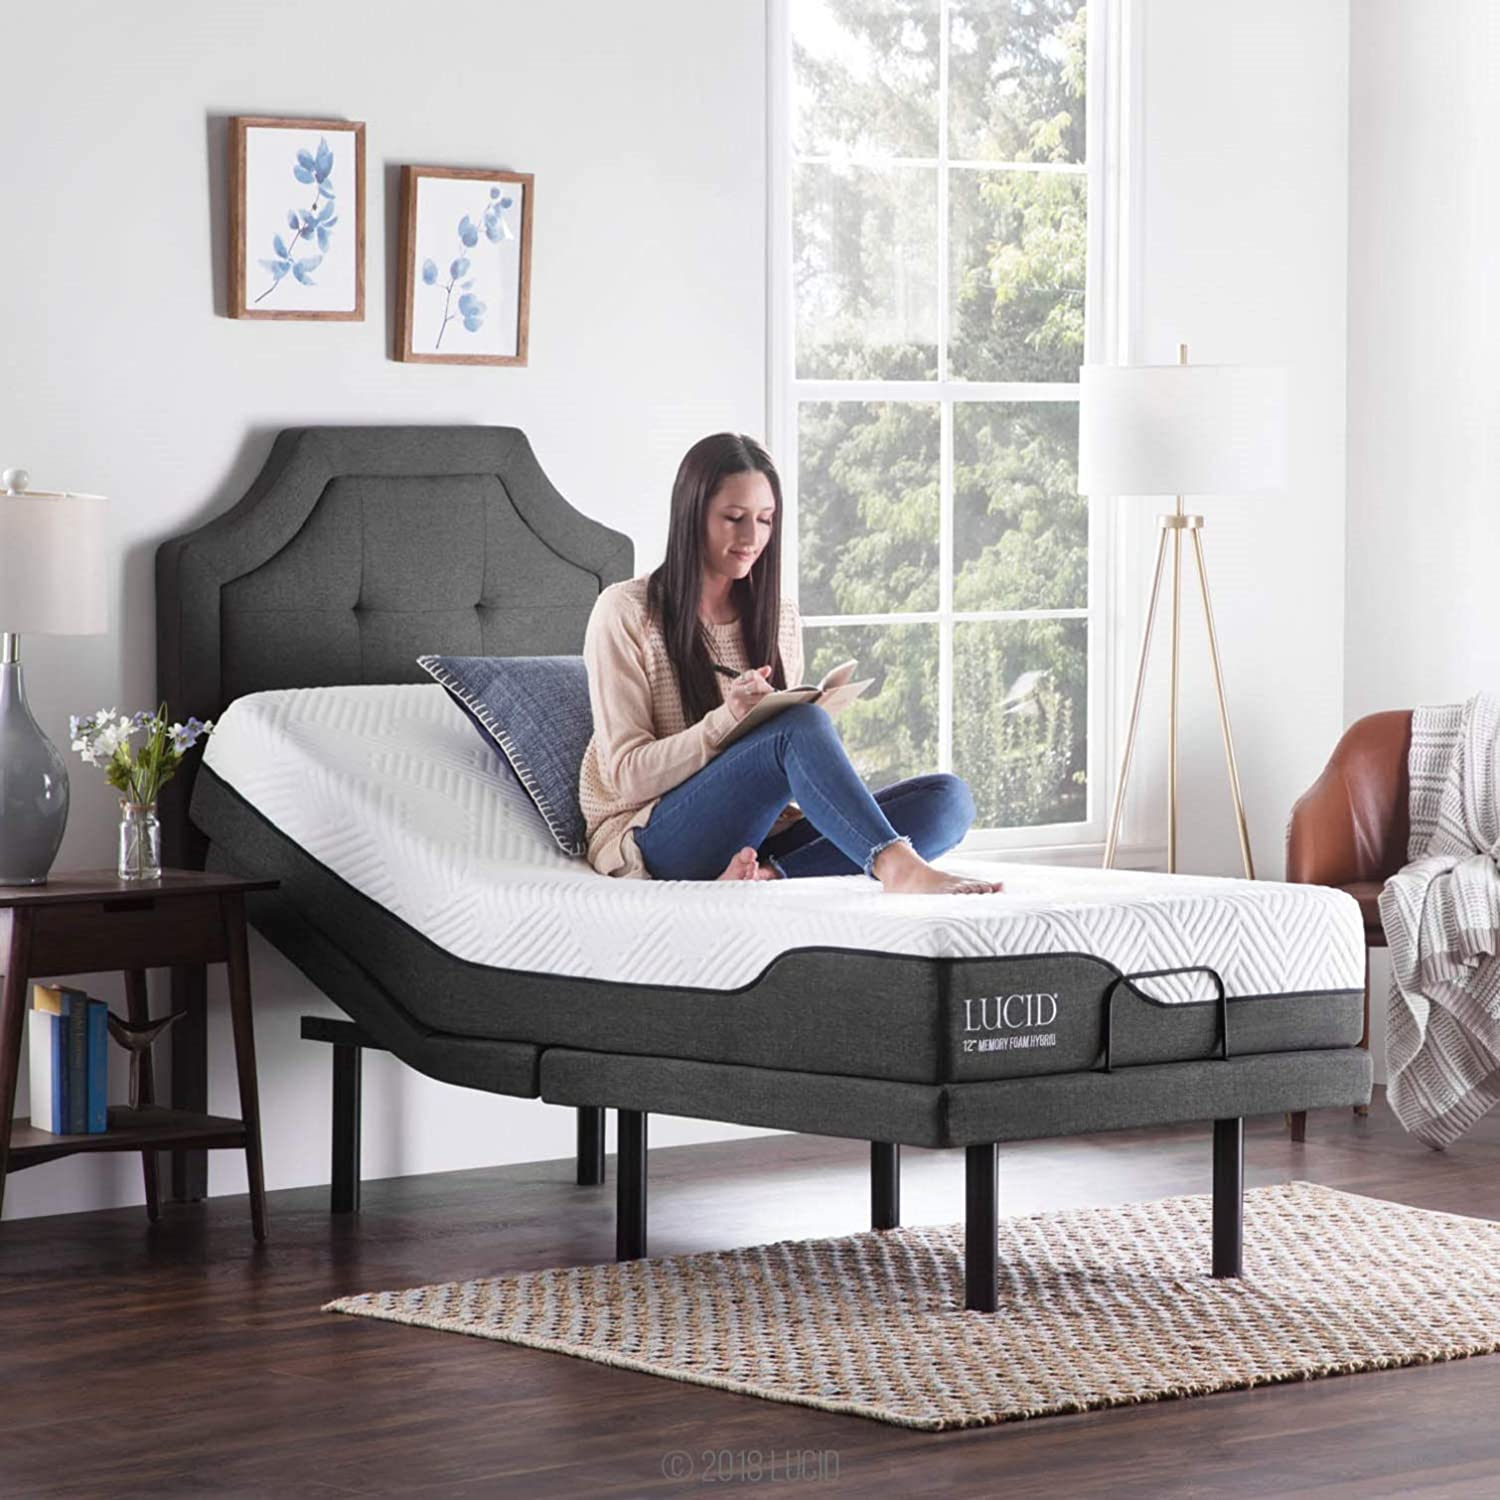 LUCID L5 Adjustable Bed Base with LUCID 5 Inch Memory Foam Hybrid  Mattress - Twin XL